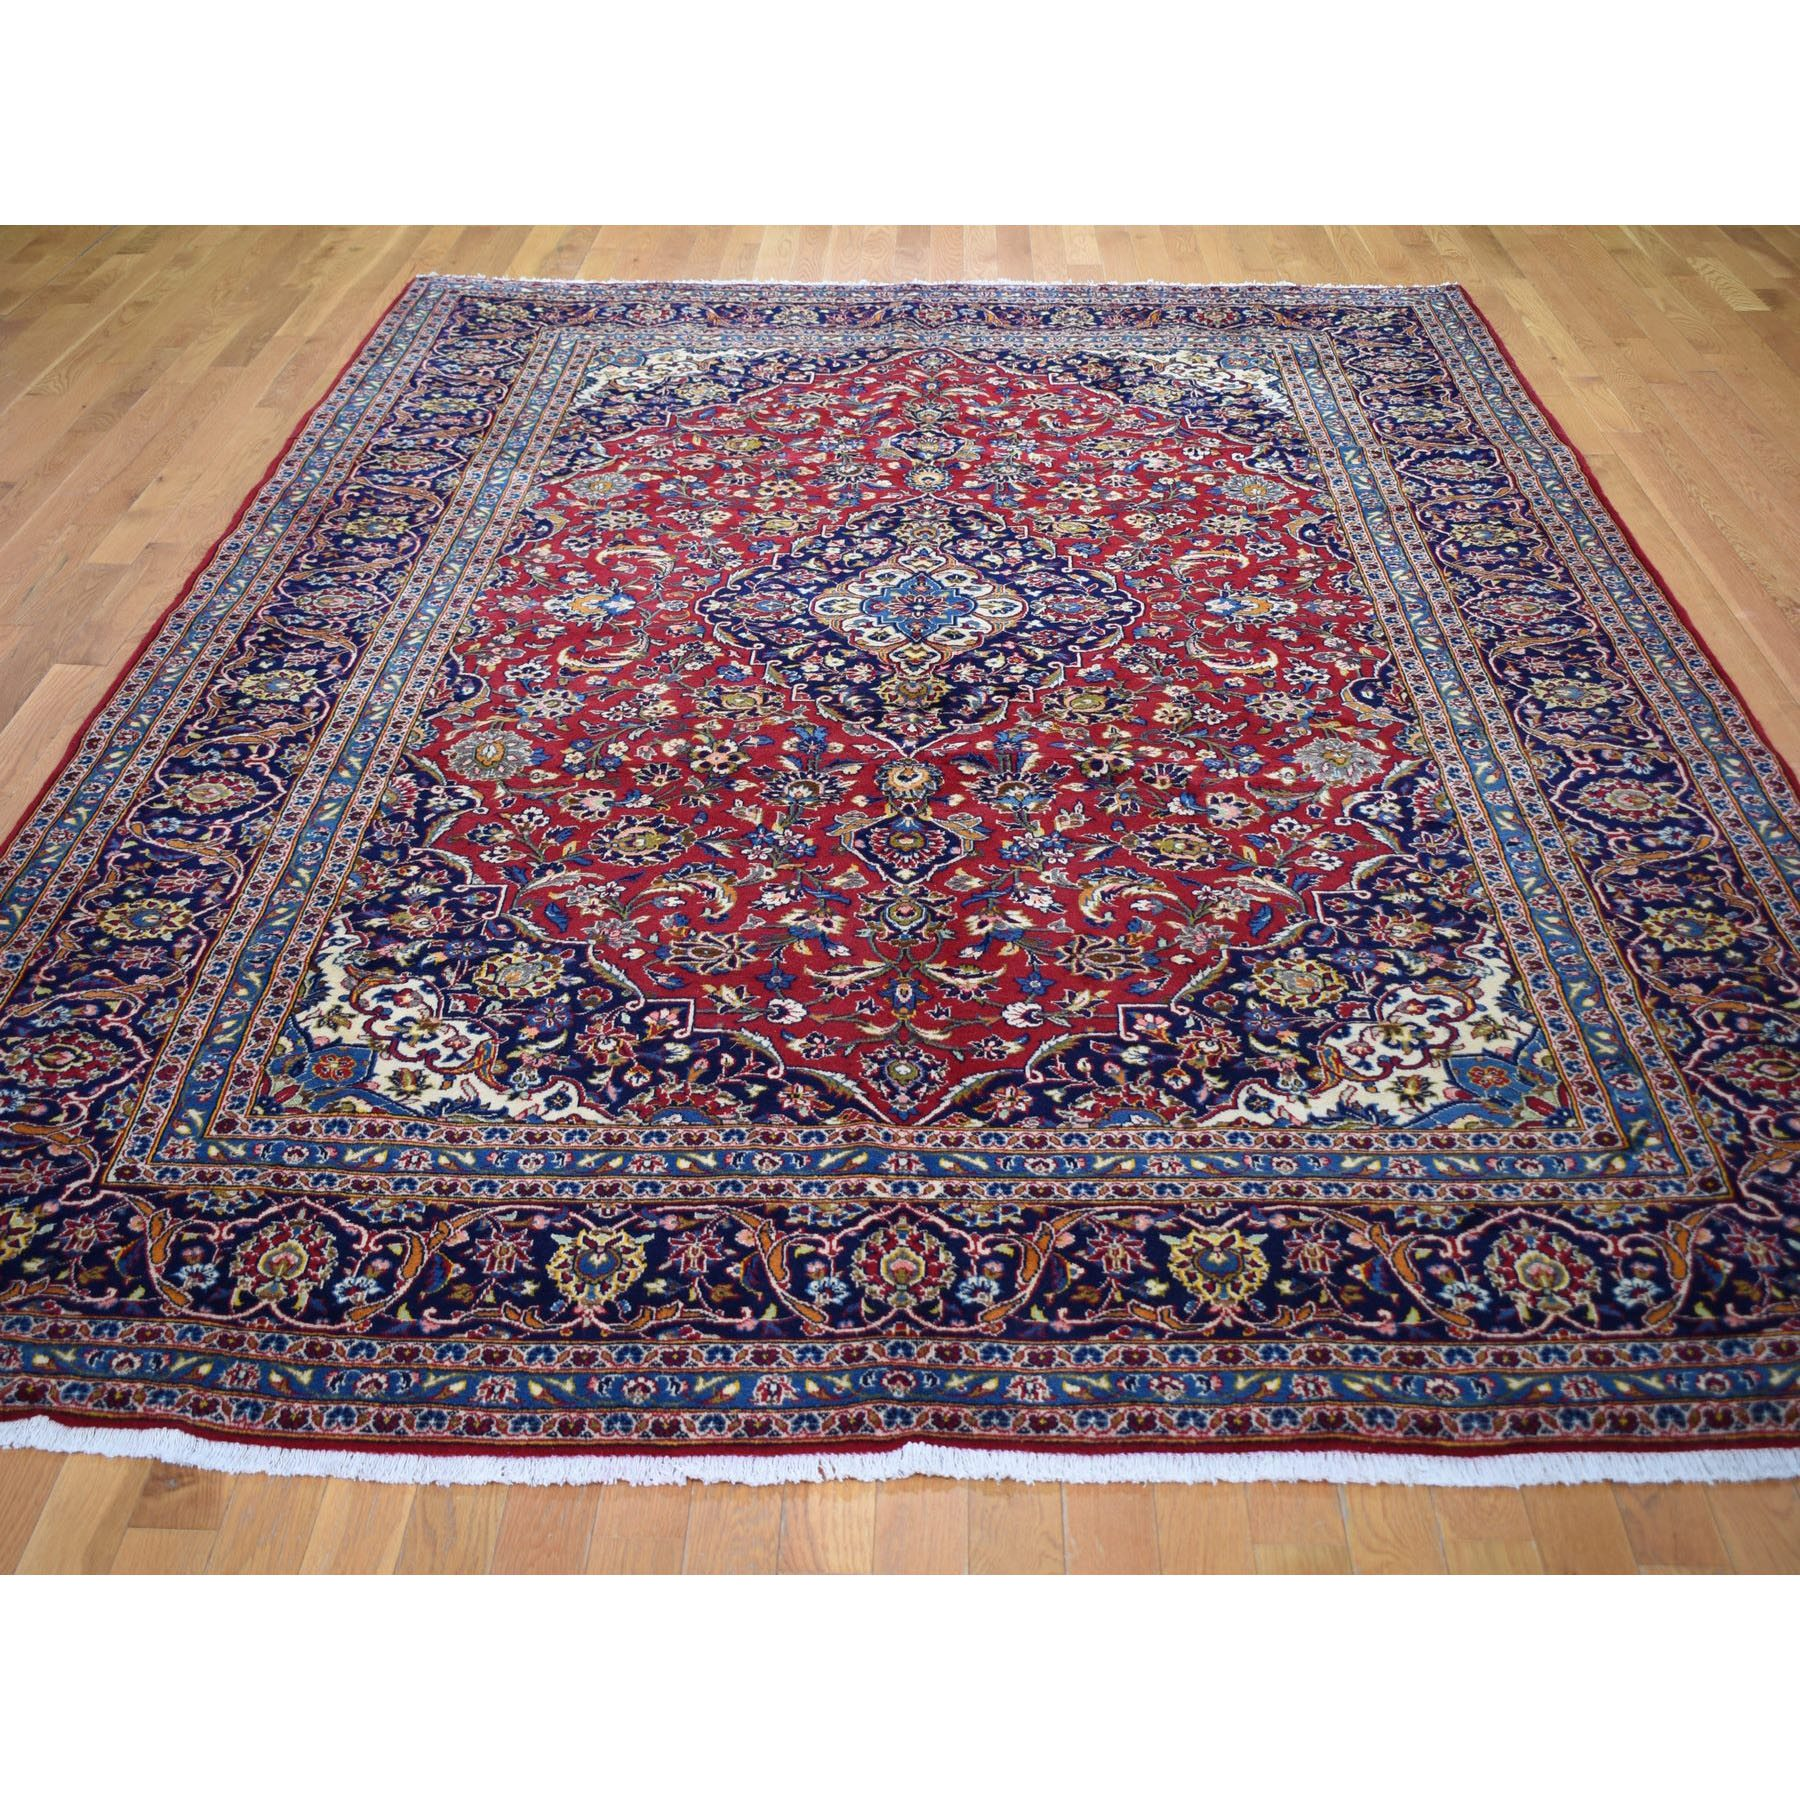 "8'x11'7"" Red Semi Antique Persian Kashan Full Pile Pure Wool Hand Woven Oriental Rug"